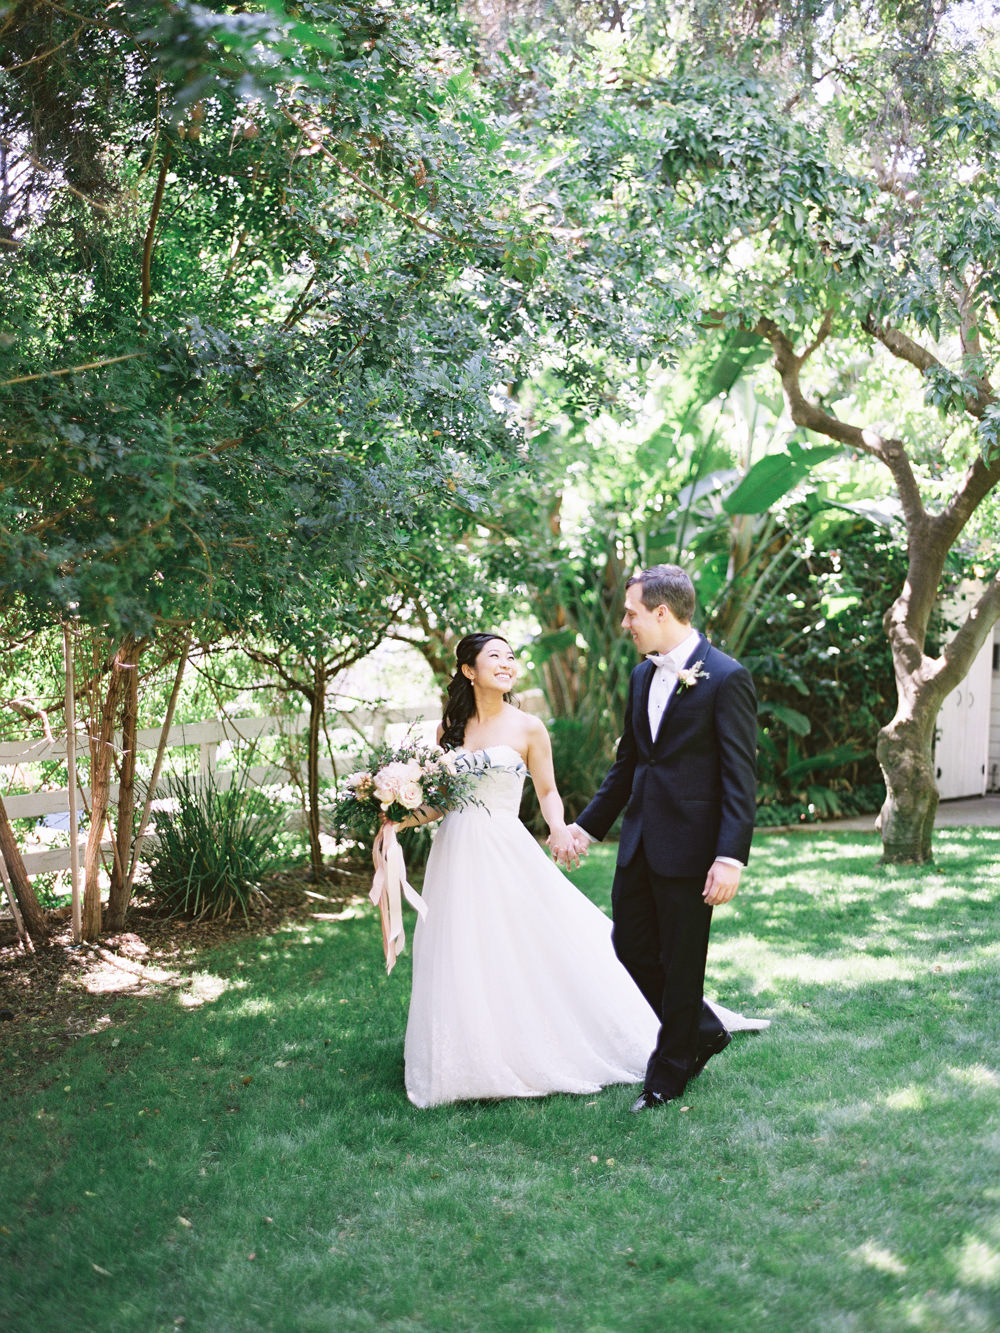 RomanticGardenWedding_WhiskersandWillow_042.jpg